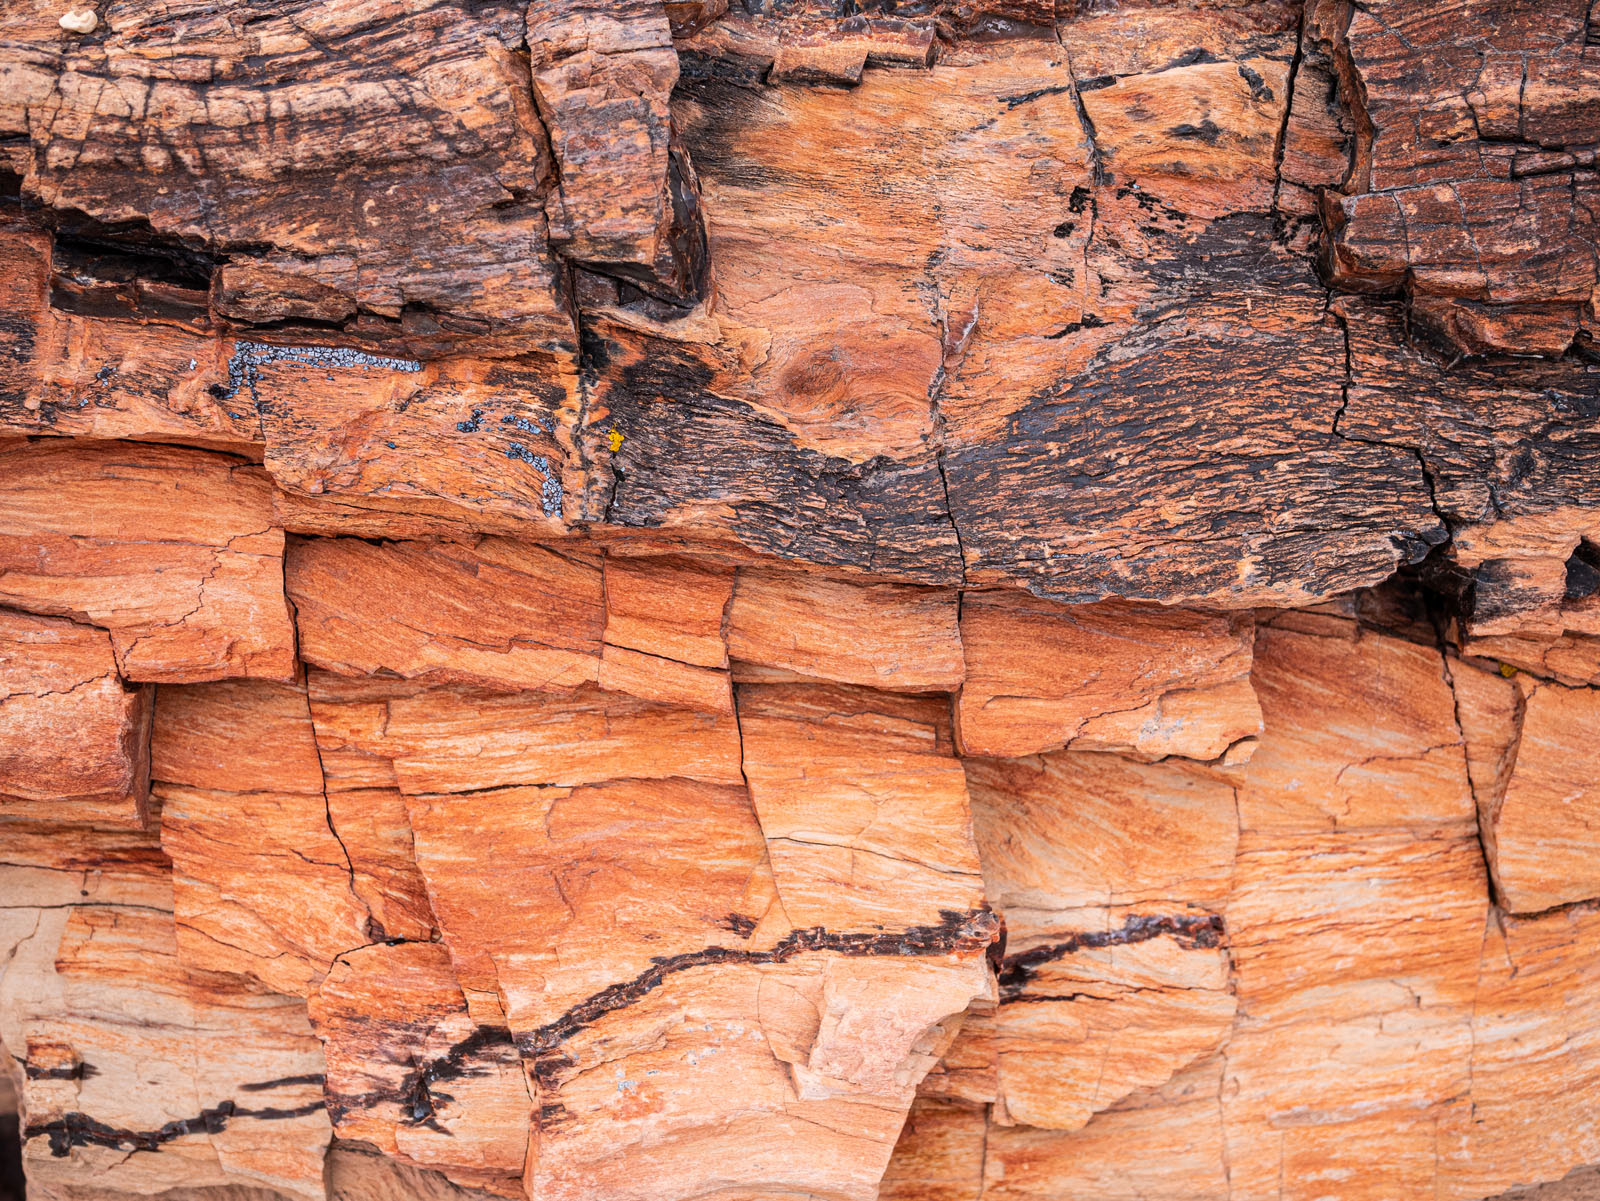 CO_Vacationmoon_PetrifiedWoodMacros-1010522.jpg